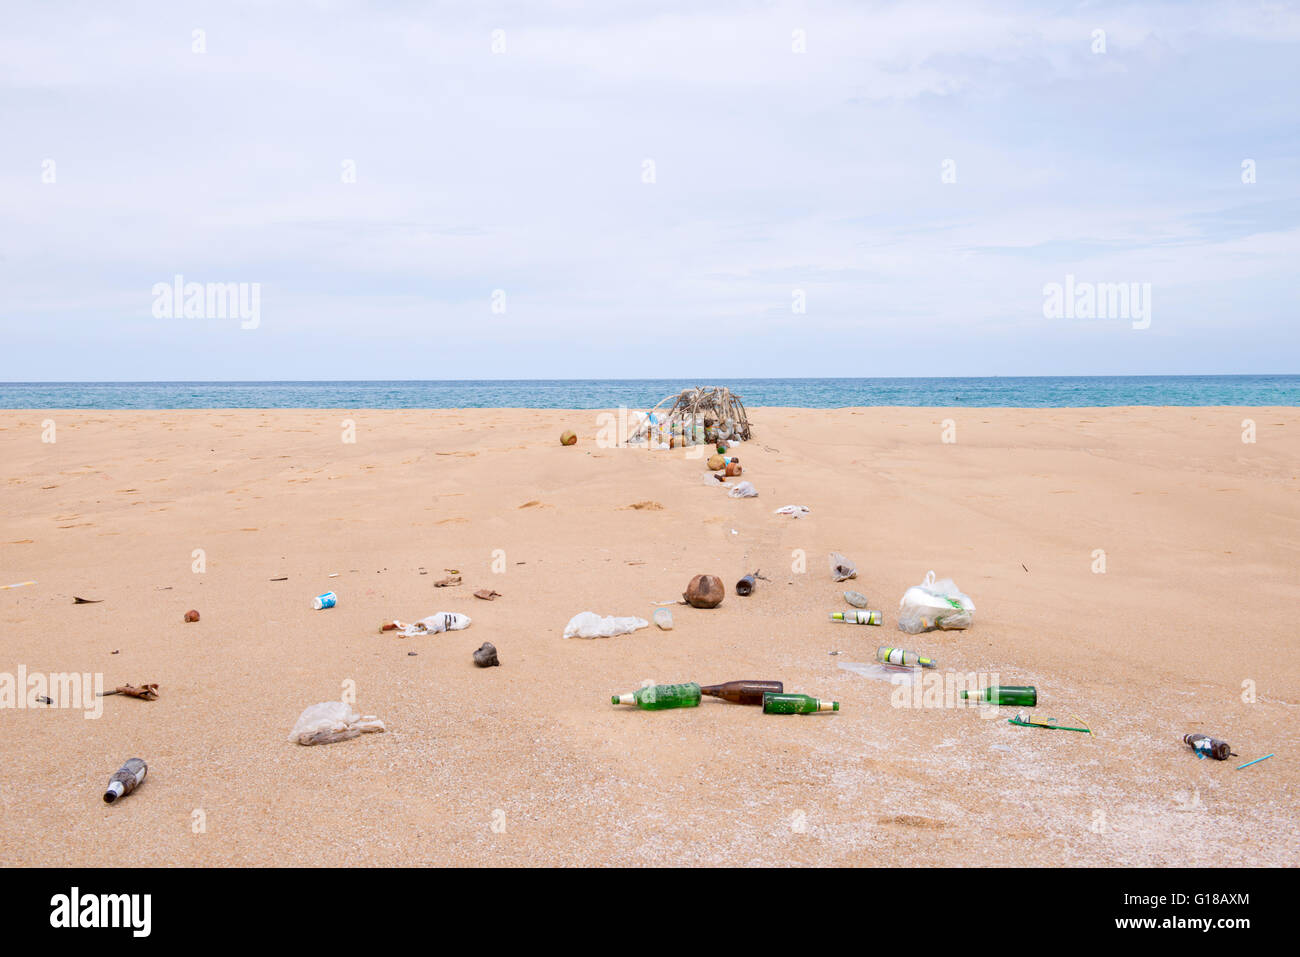 bottles and garbage waste on the beach - Stock Image